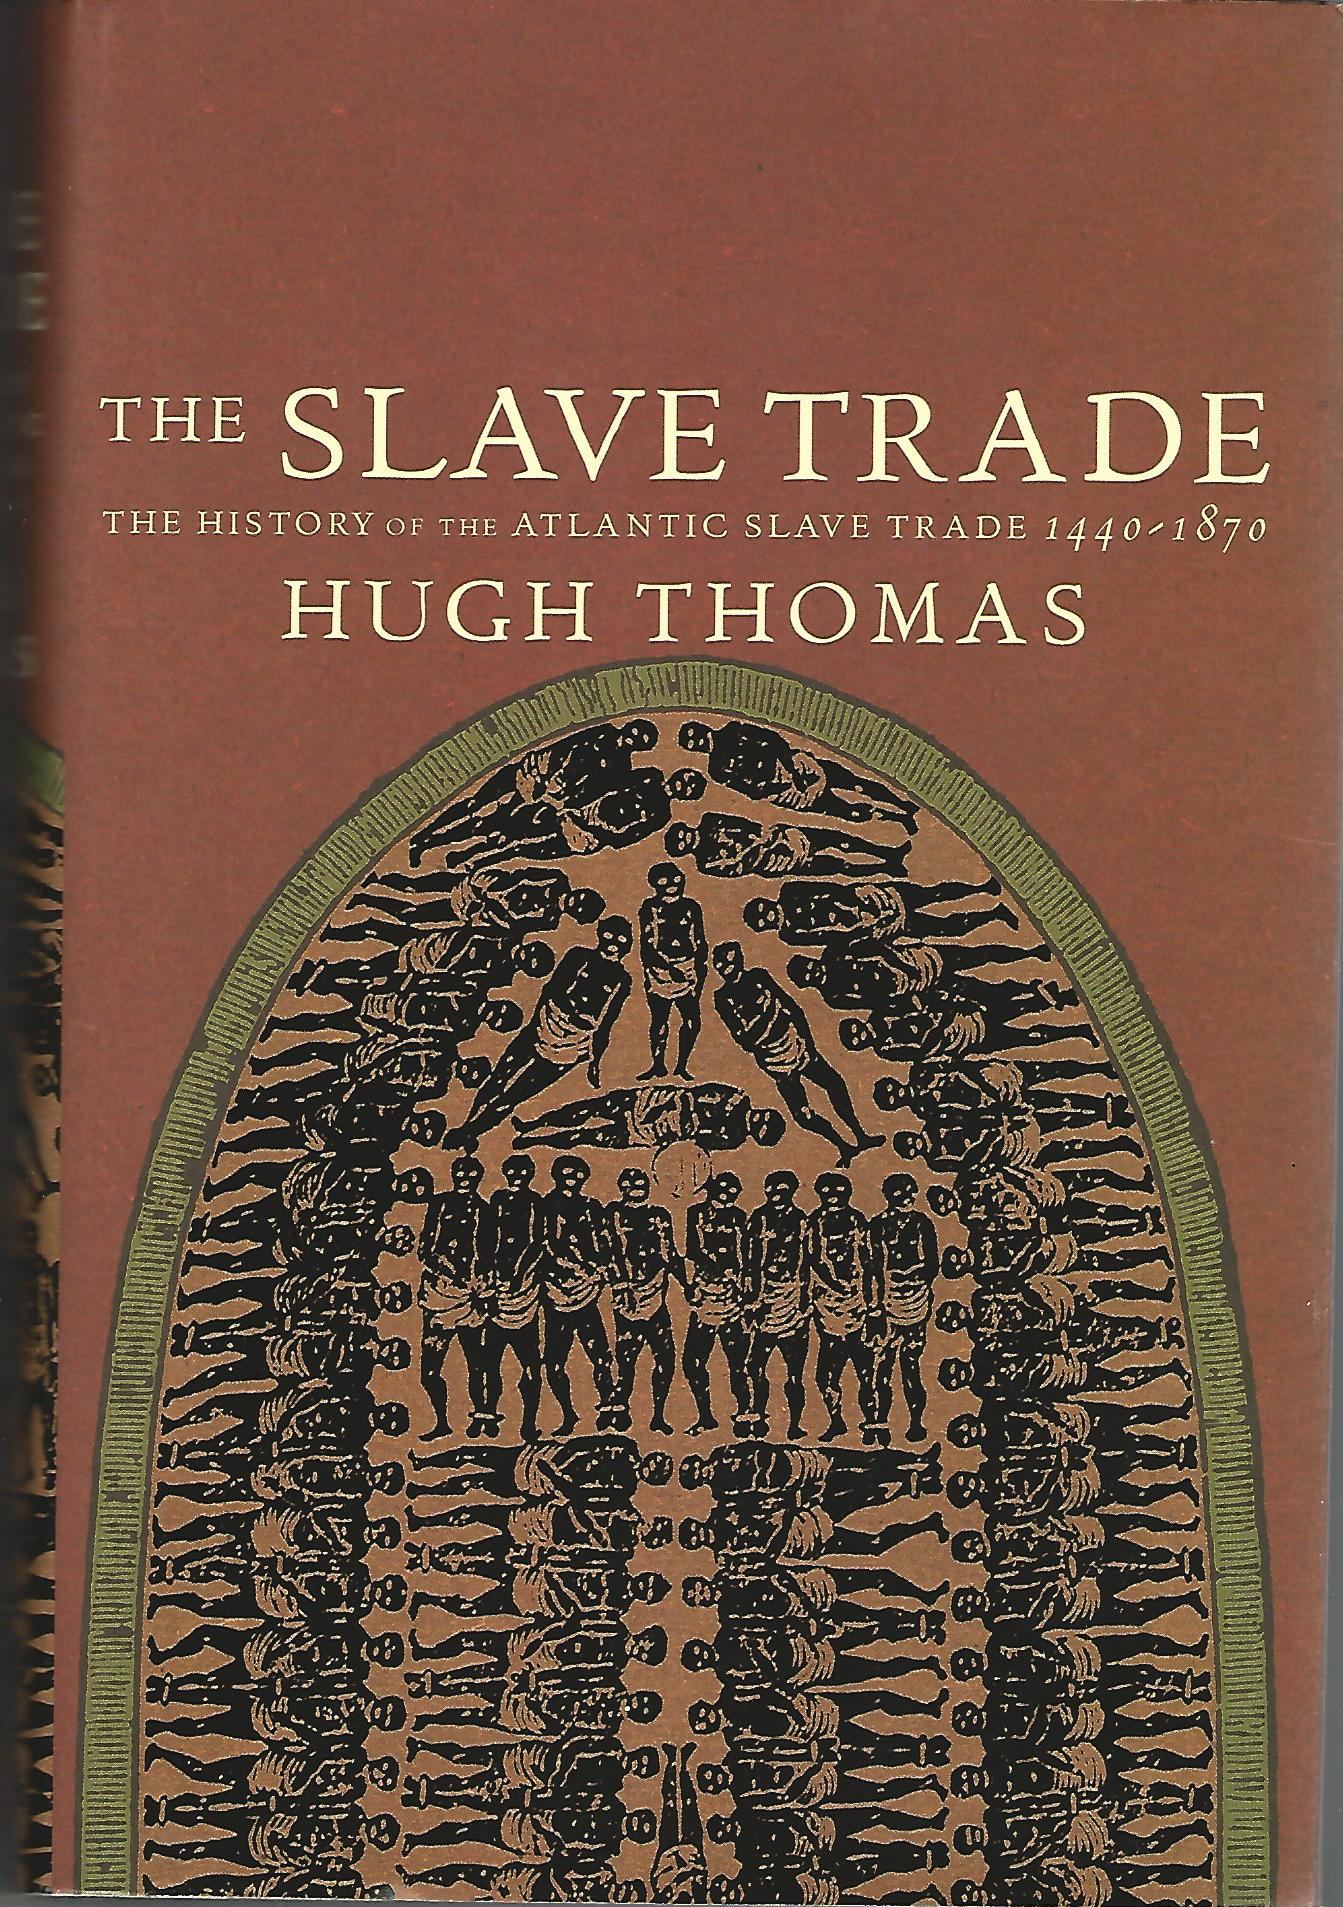 Image for The Slave Trade - The History of the Atlantic Slave Trade 1440-1870